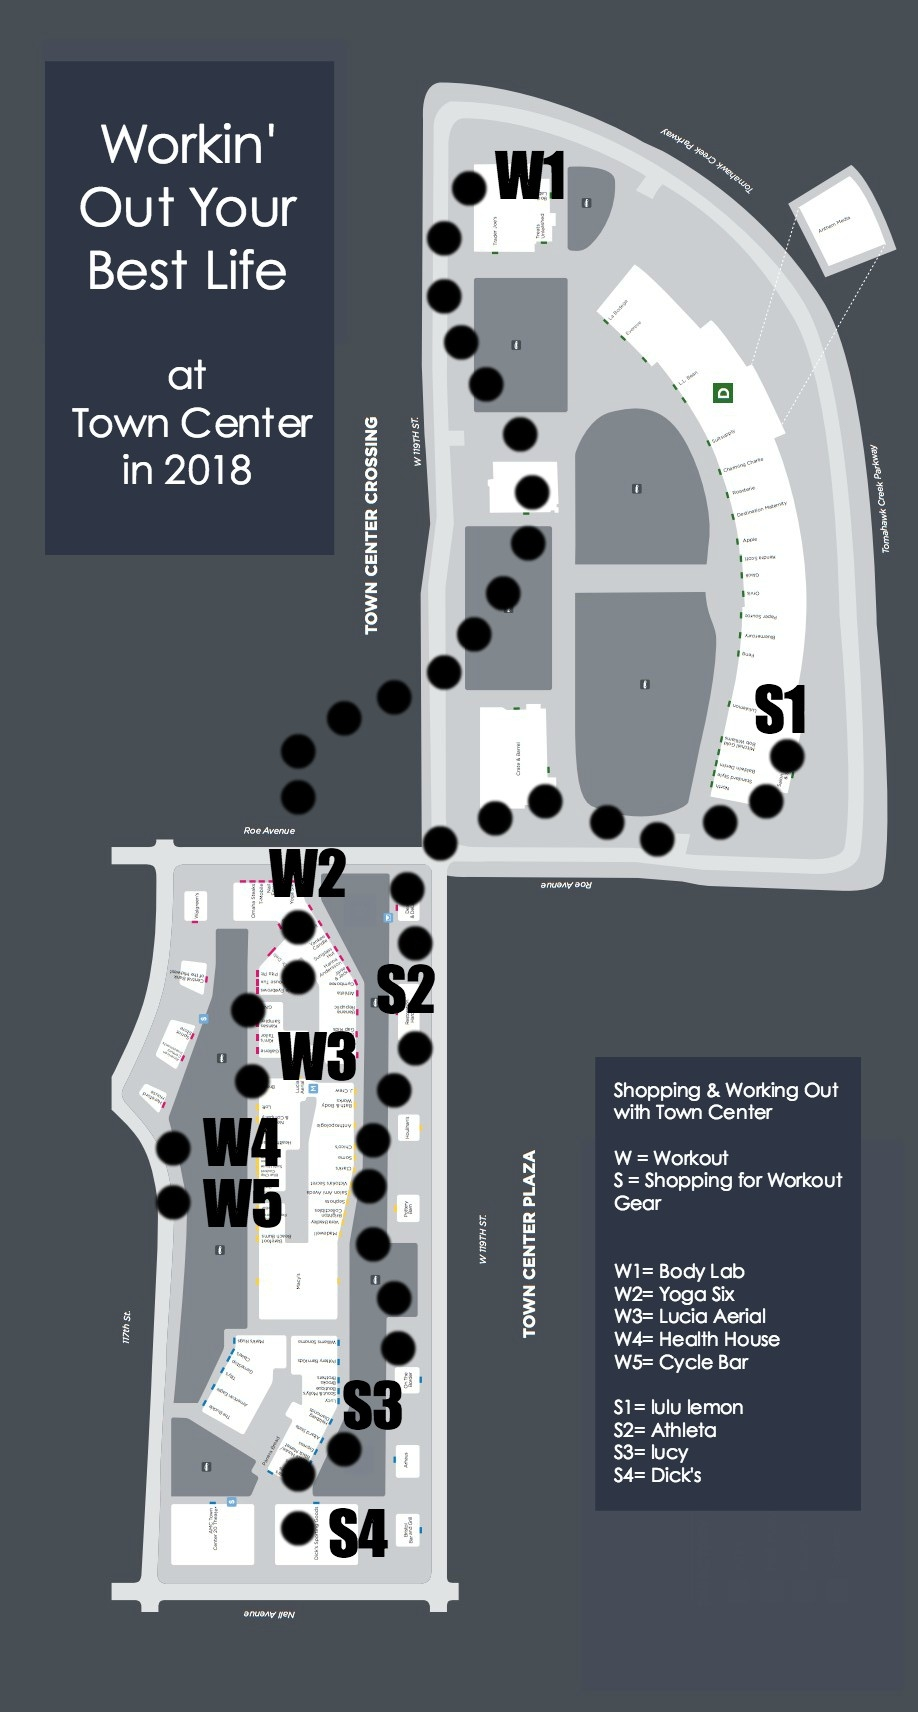 Where to work out at Town Center